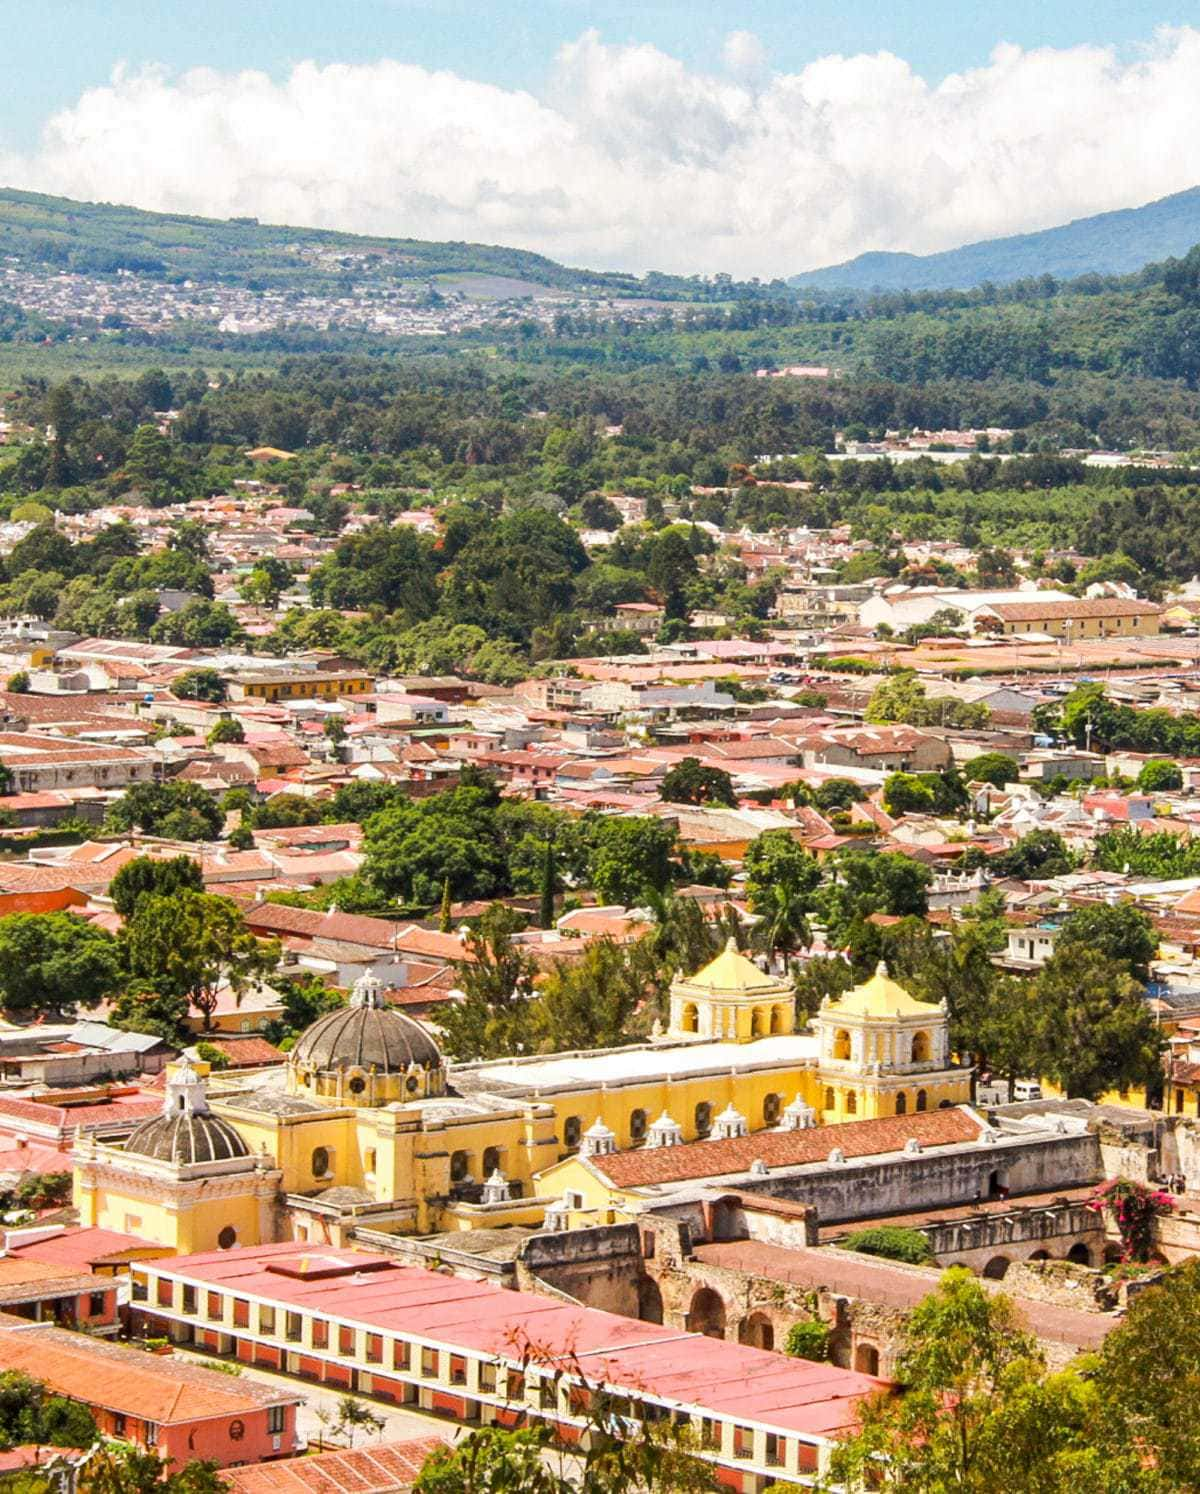 Photo diary of the charming town of Antigua in Guatemala, via www.livelikeitstheweekend.com